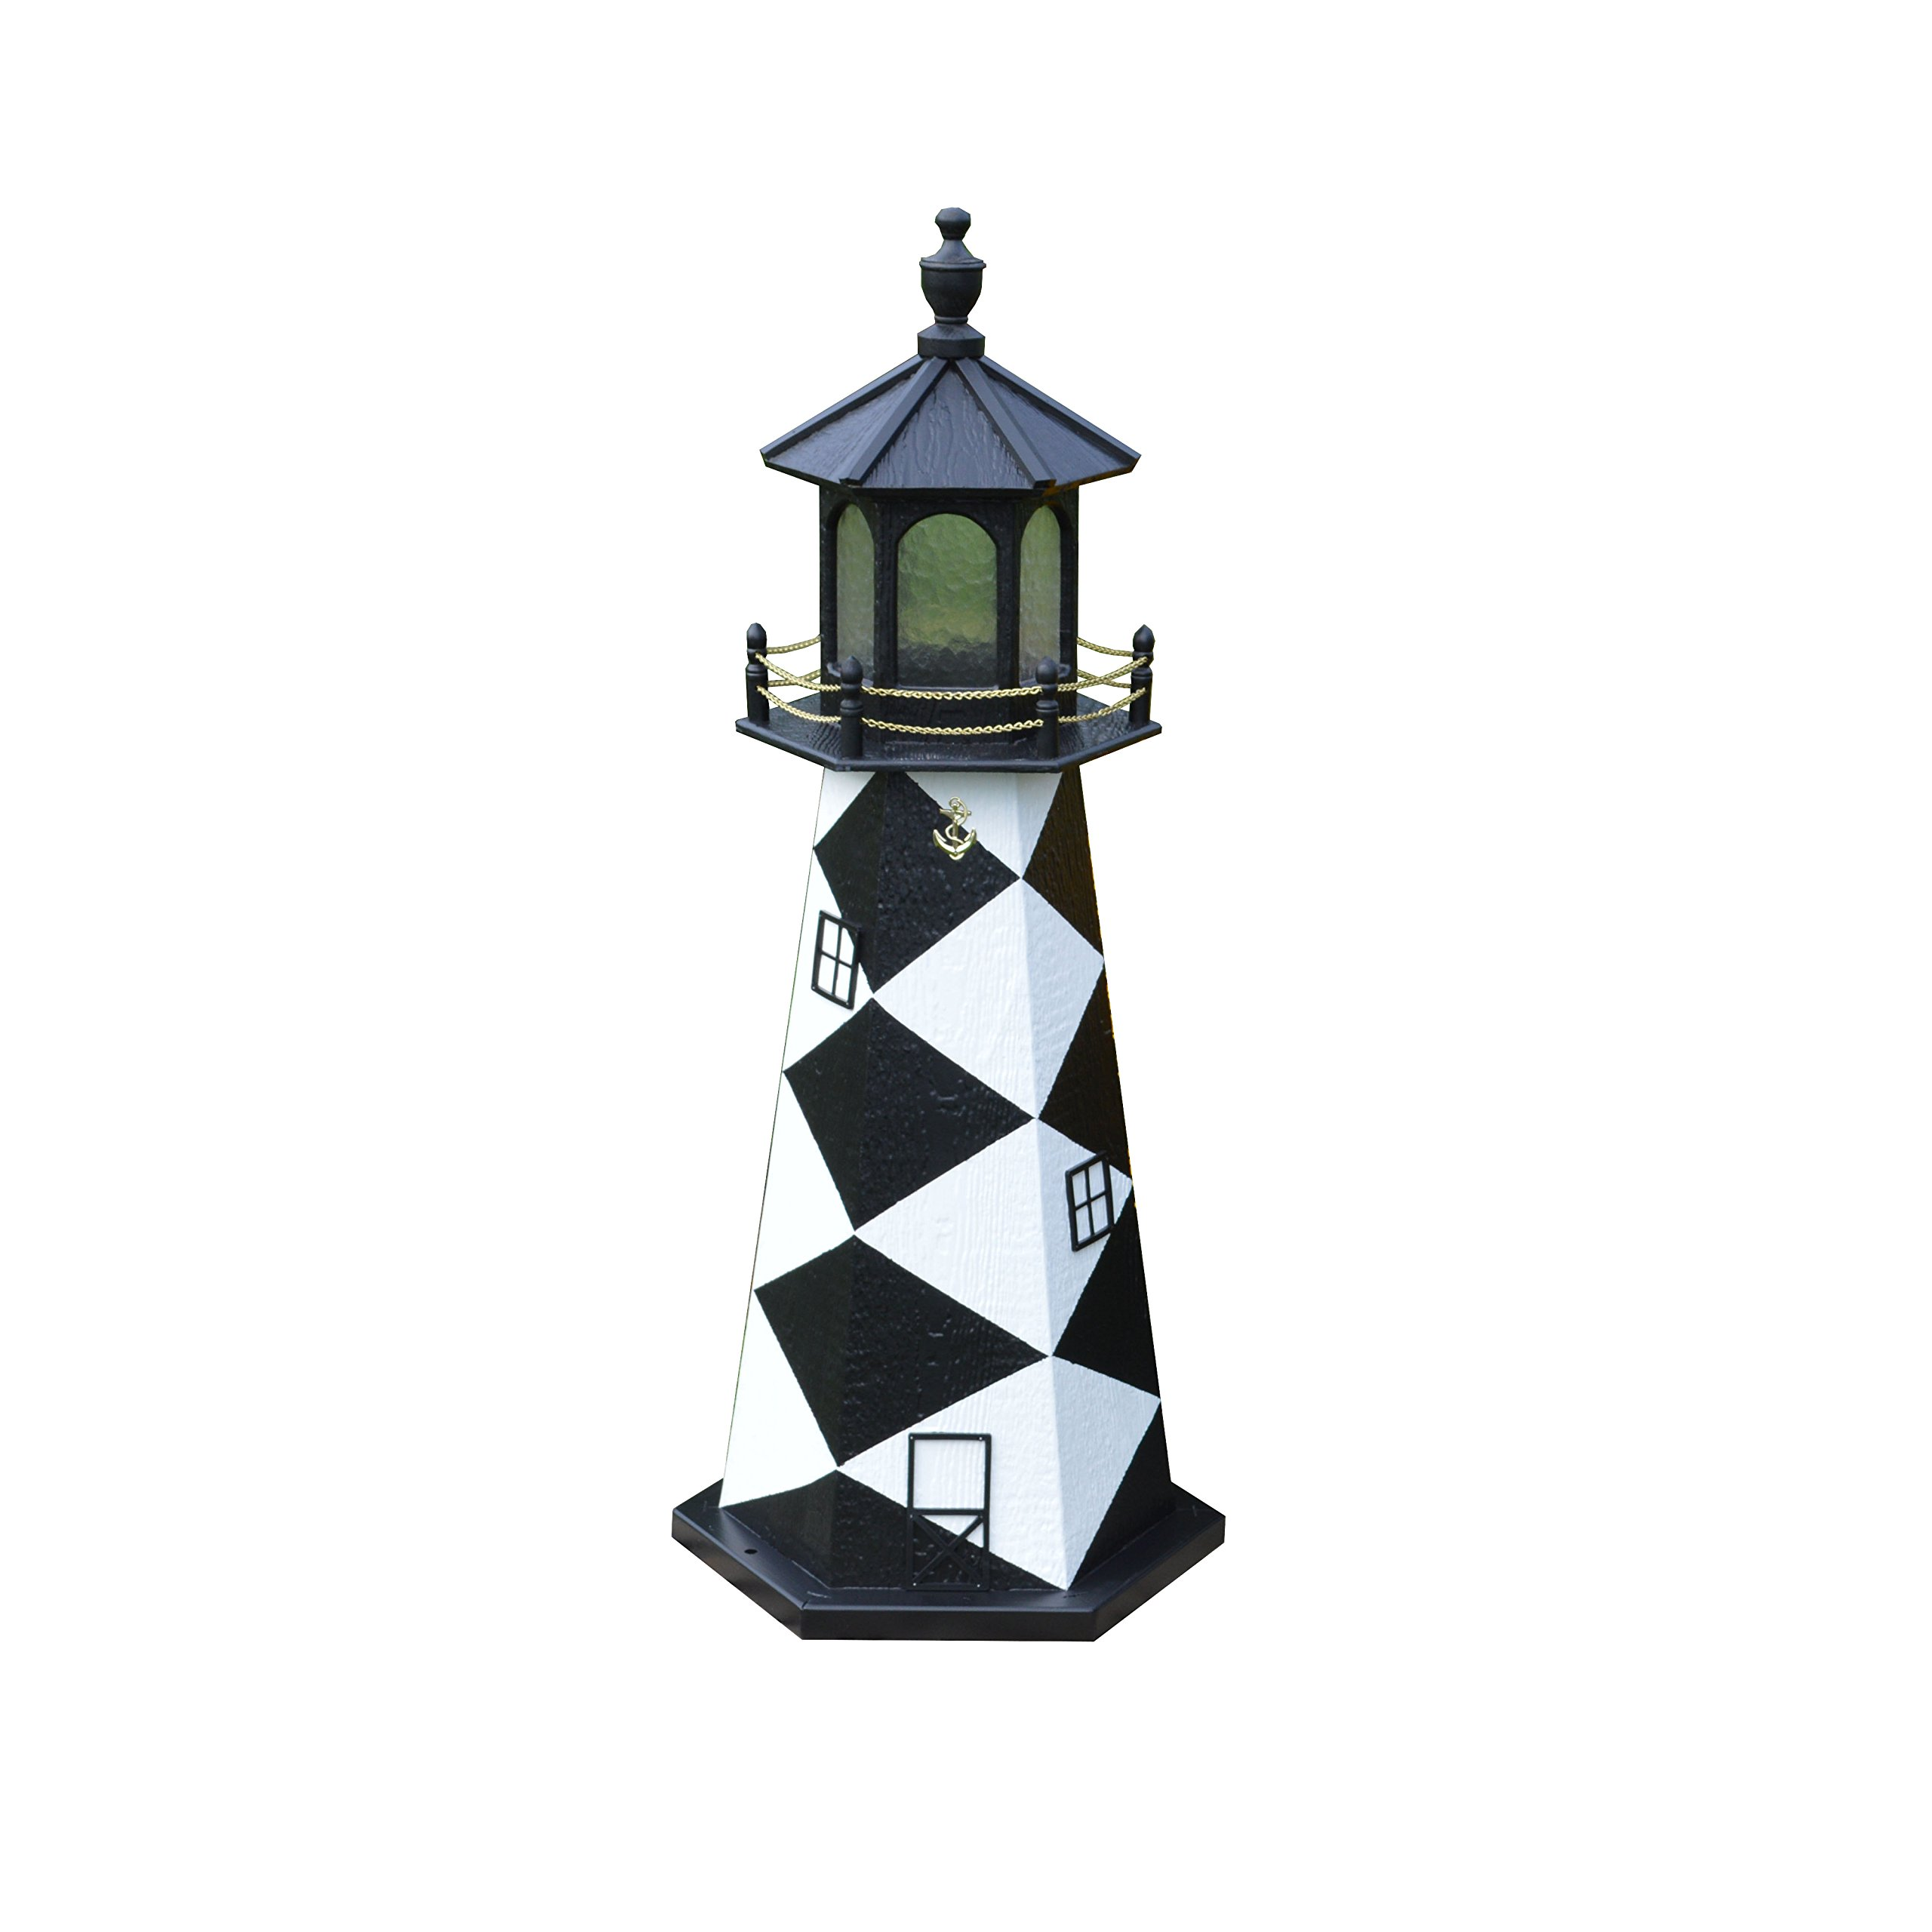 4 Ft Deluxe LighthousesReplicated USA Lighthouses - Cape Lookout, NC